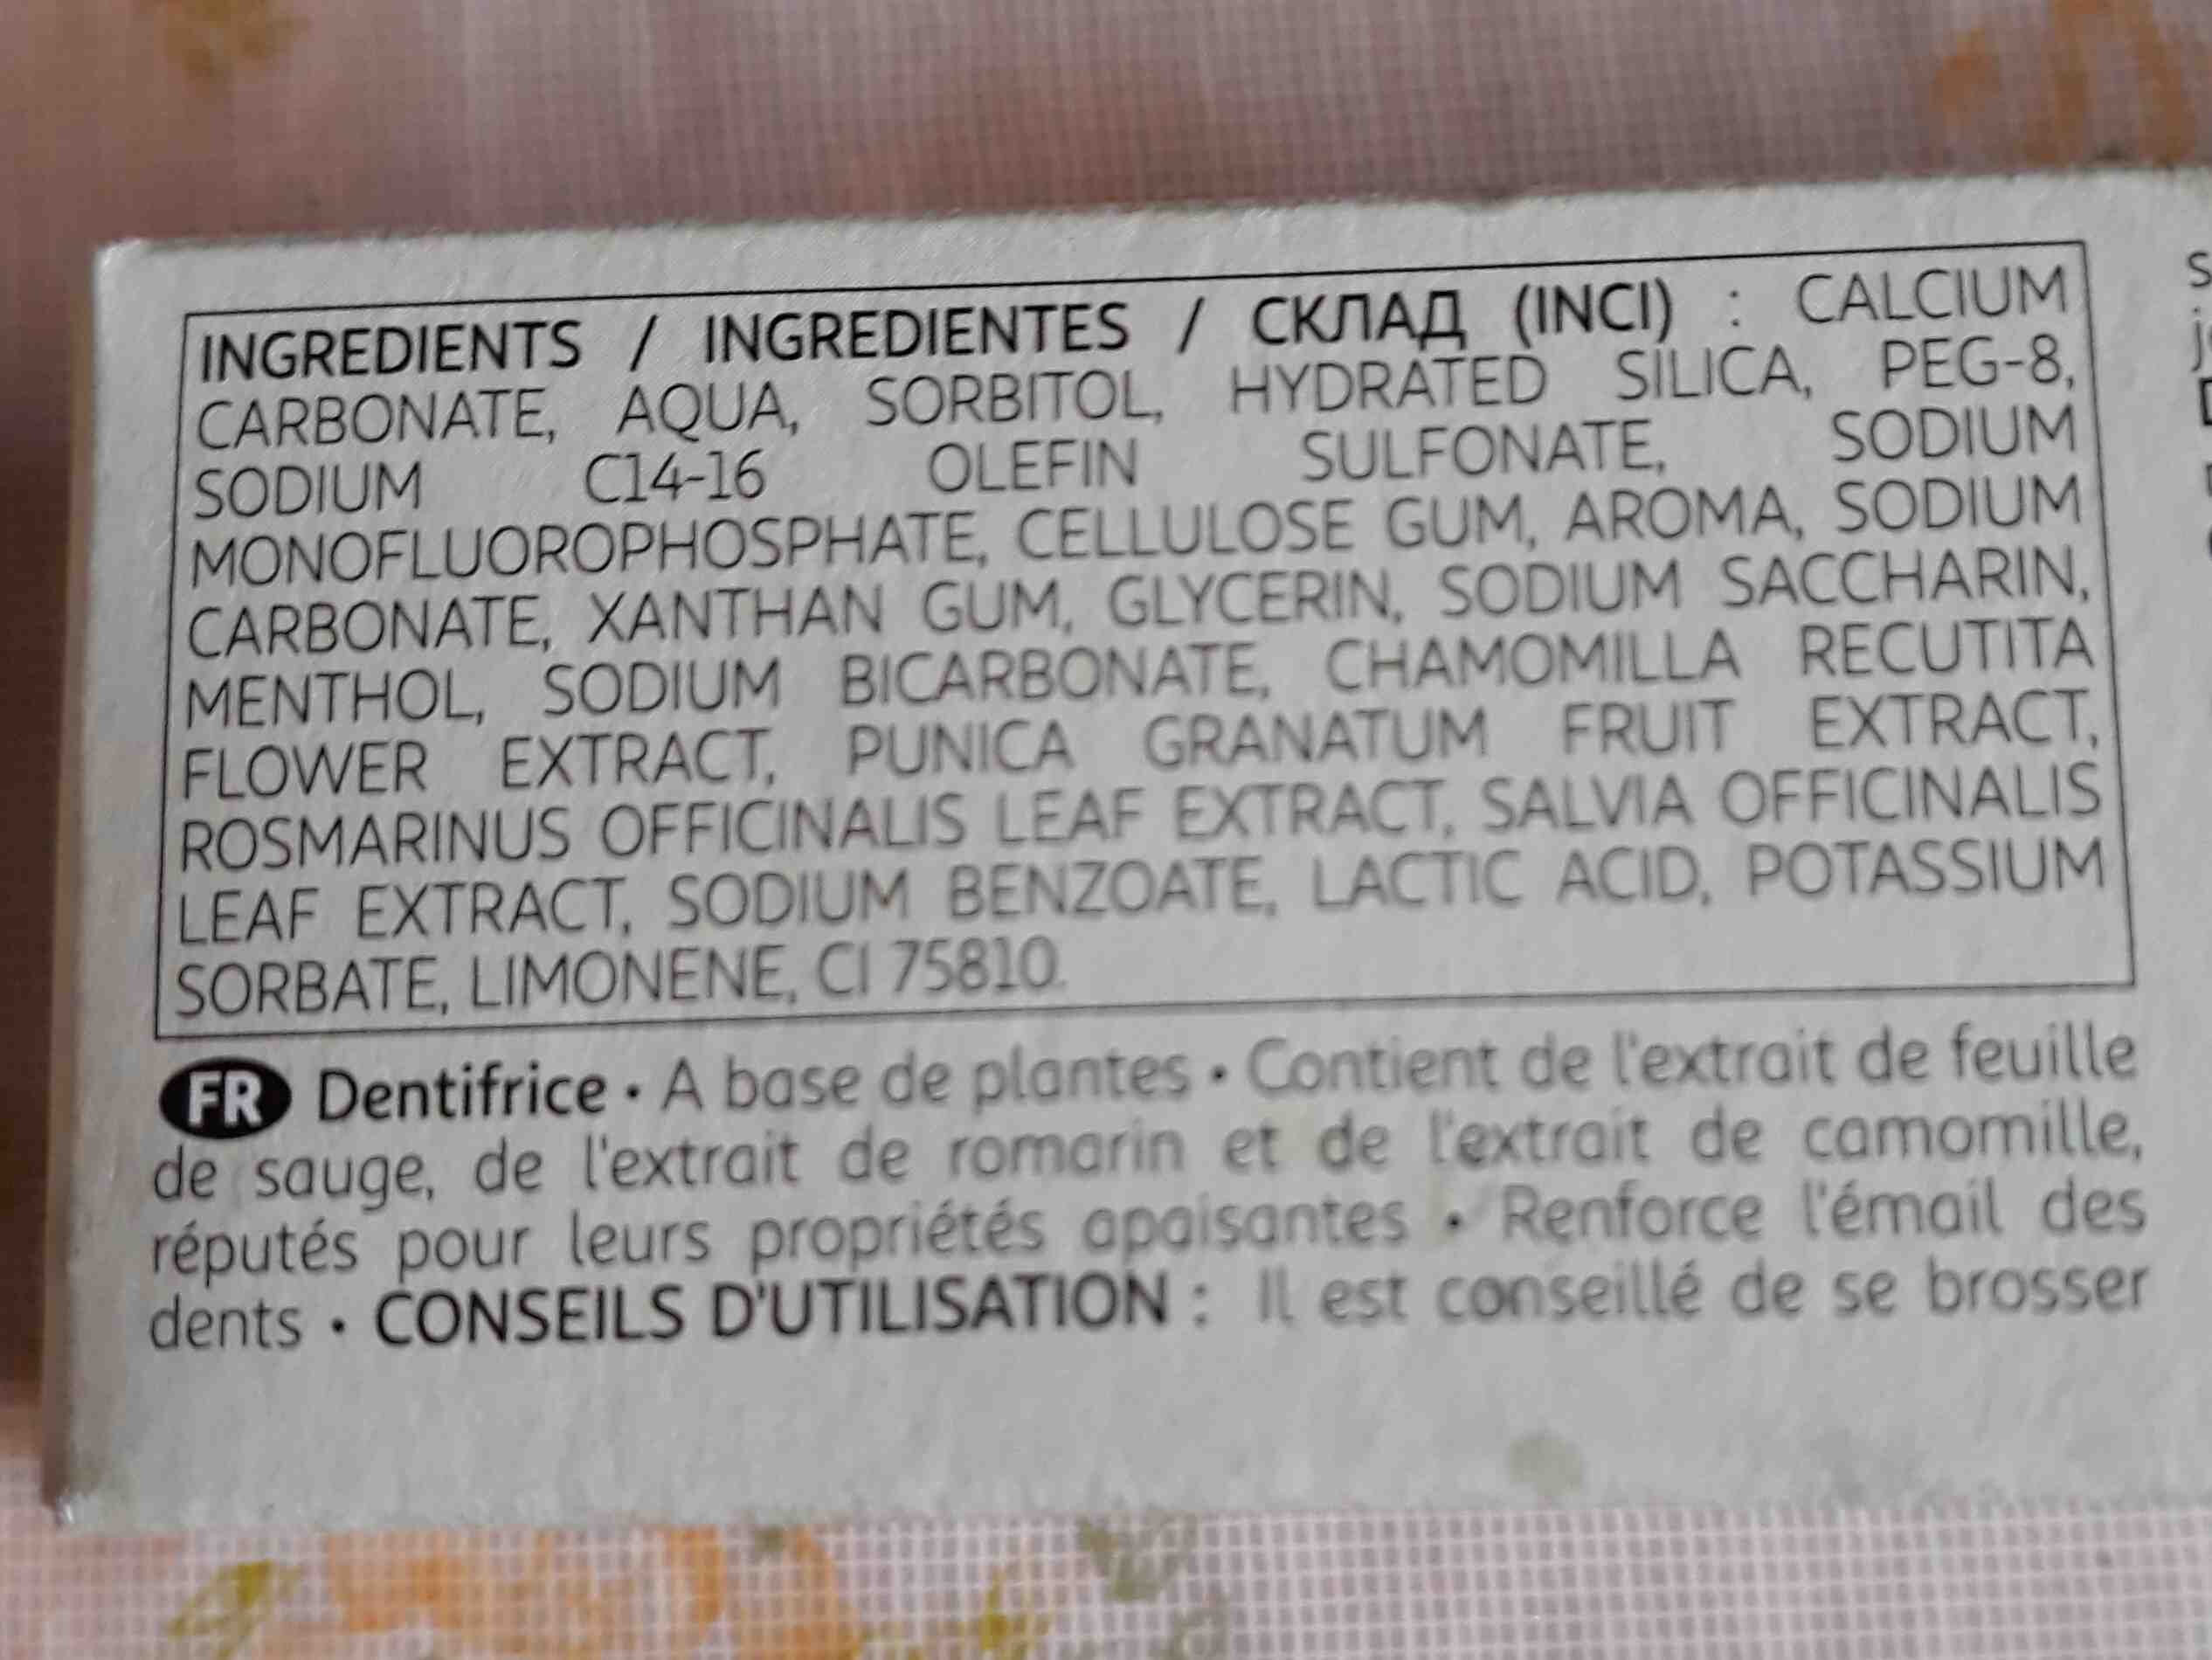 HERBAL Dentifrice de plantes - Ingredients - en